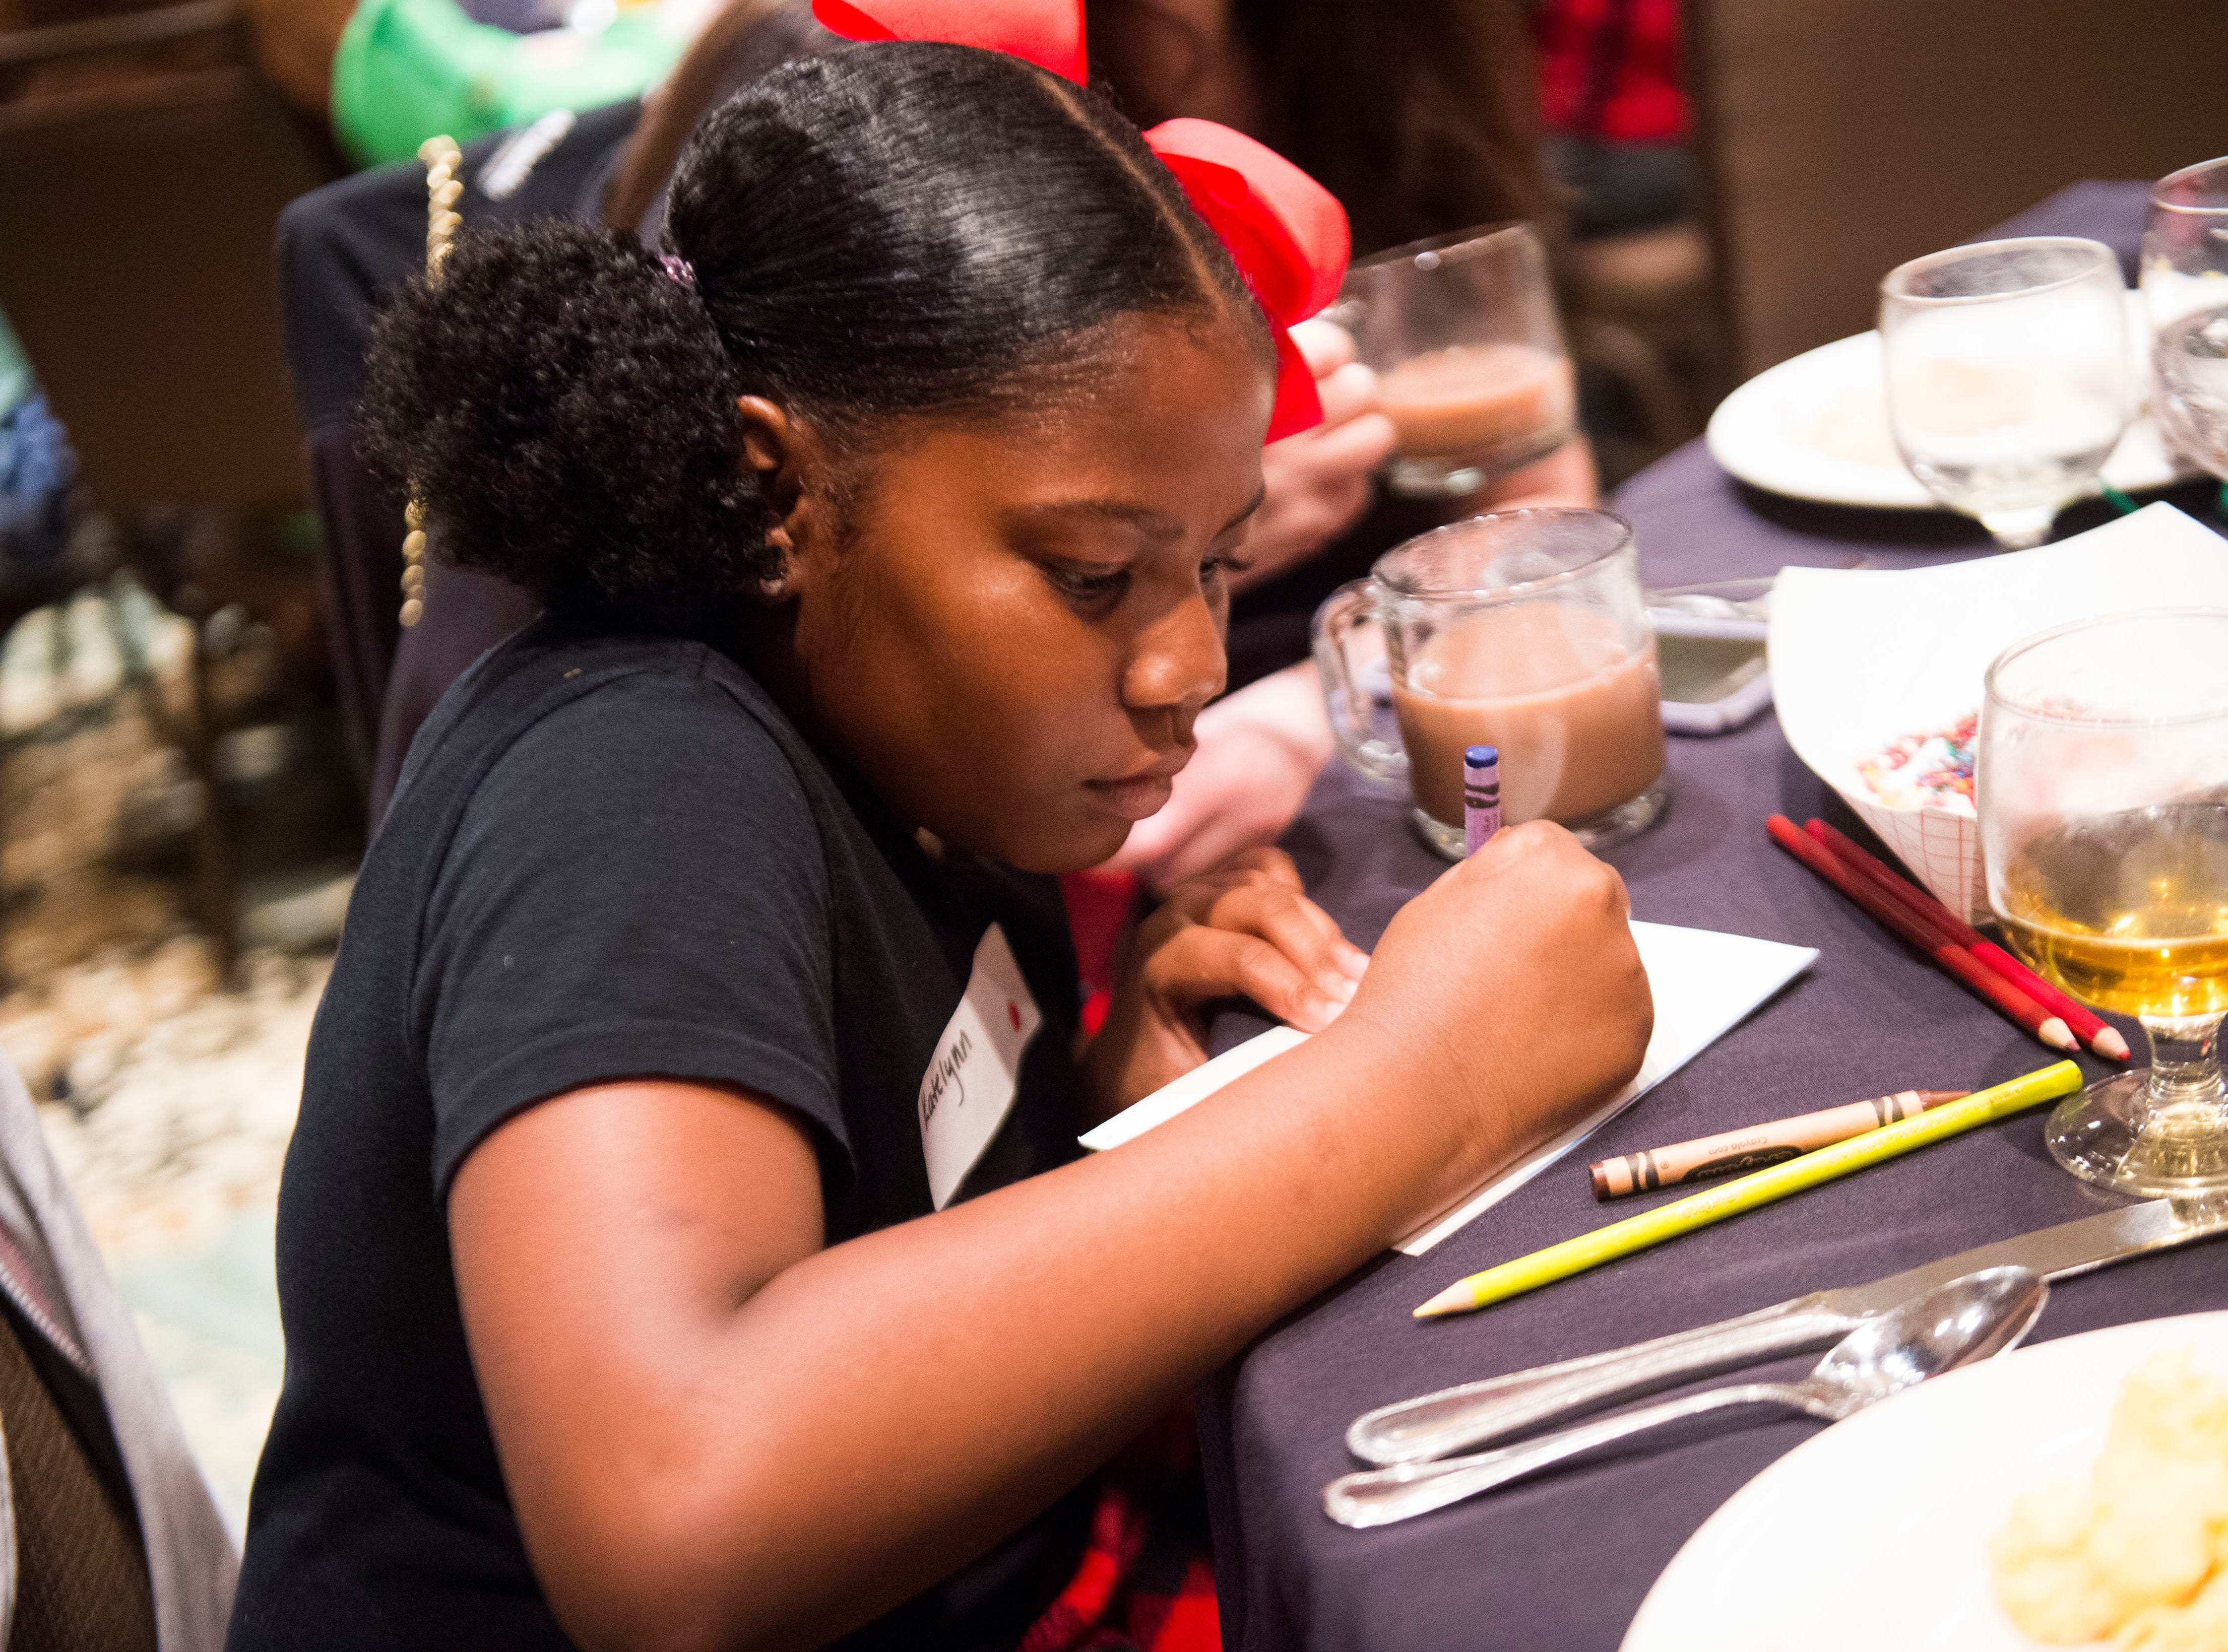 Katelynn Tate, 9, works on a thank you card at Big Brothers Big Sisters annual holiday party at the Crowne Plaza Saturday, Dec. 1, 2018. Nearly 300 mentors, mentees and family members were in attendance.